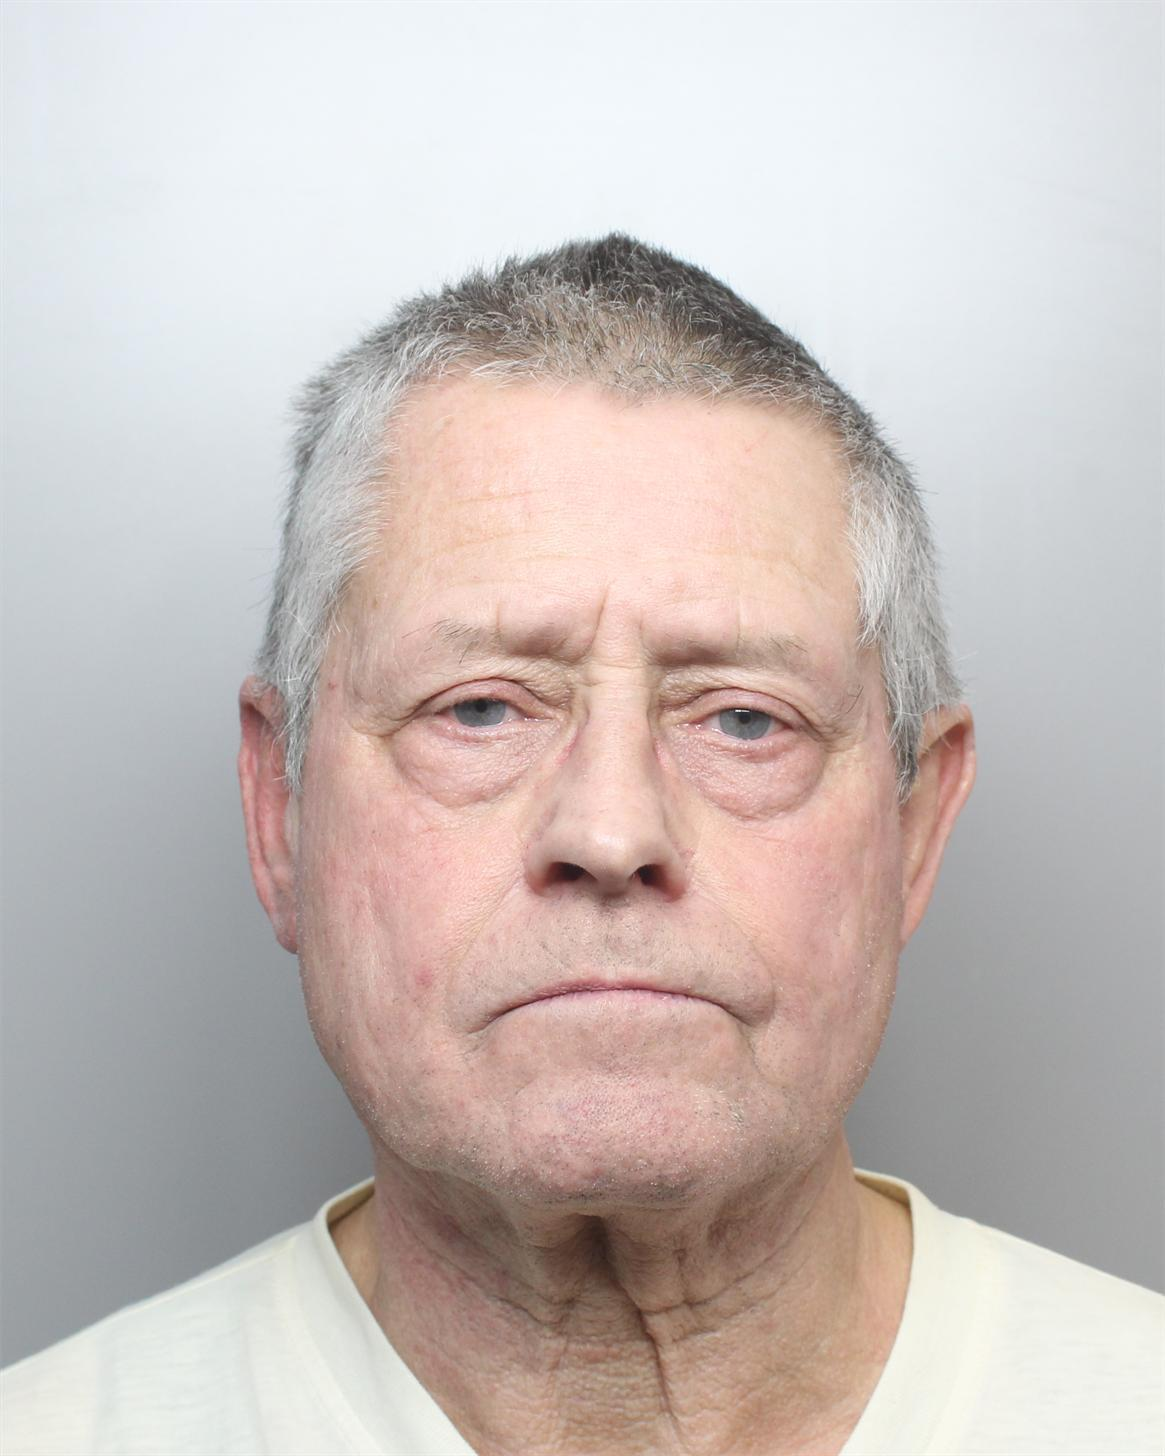 JAILED: Michael Cannon has been locked up for his offending